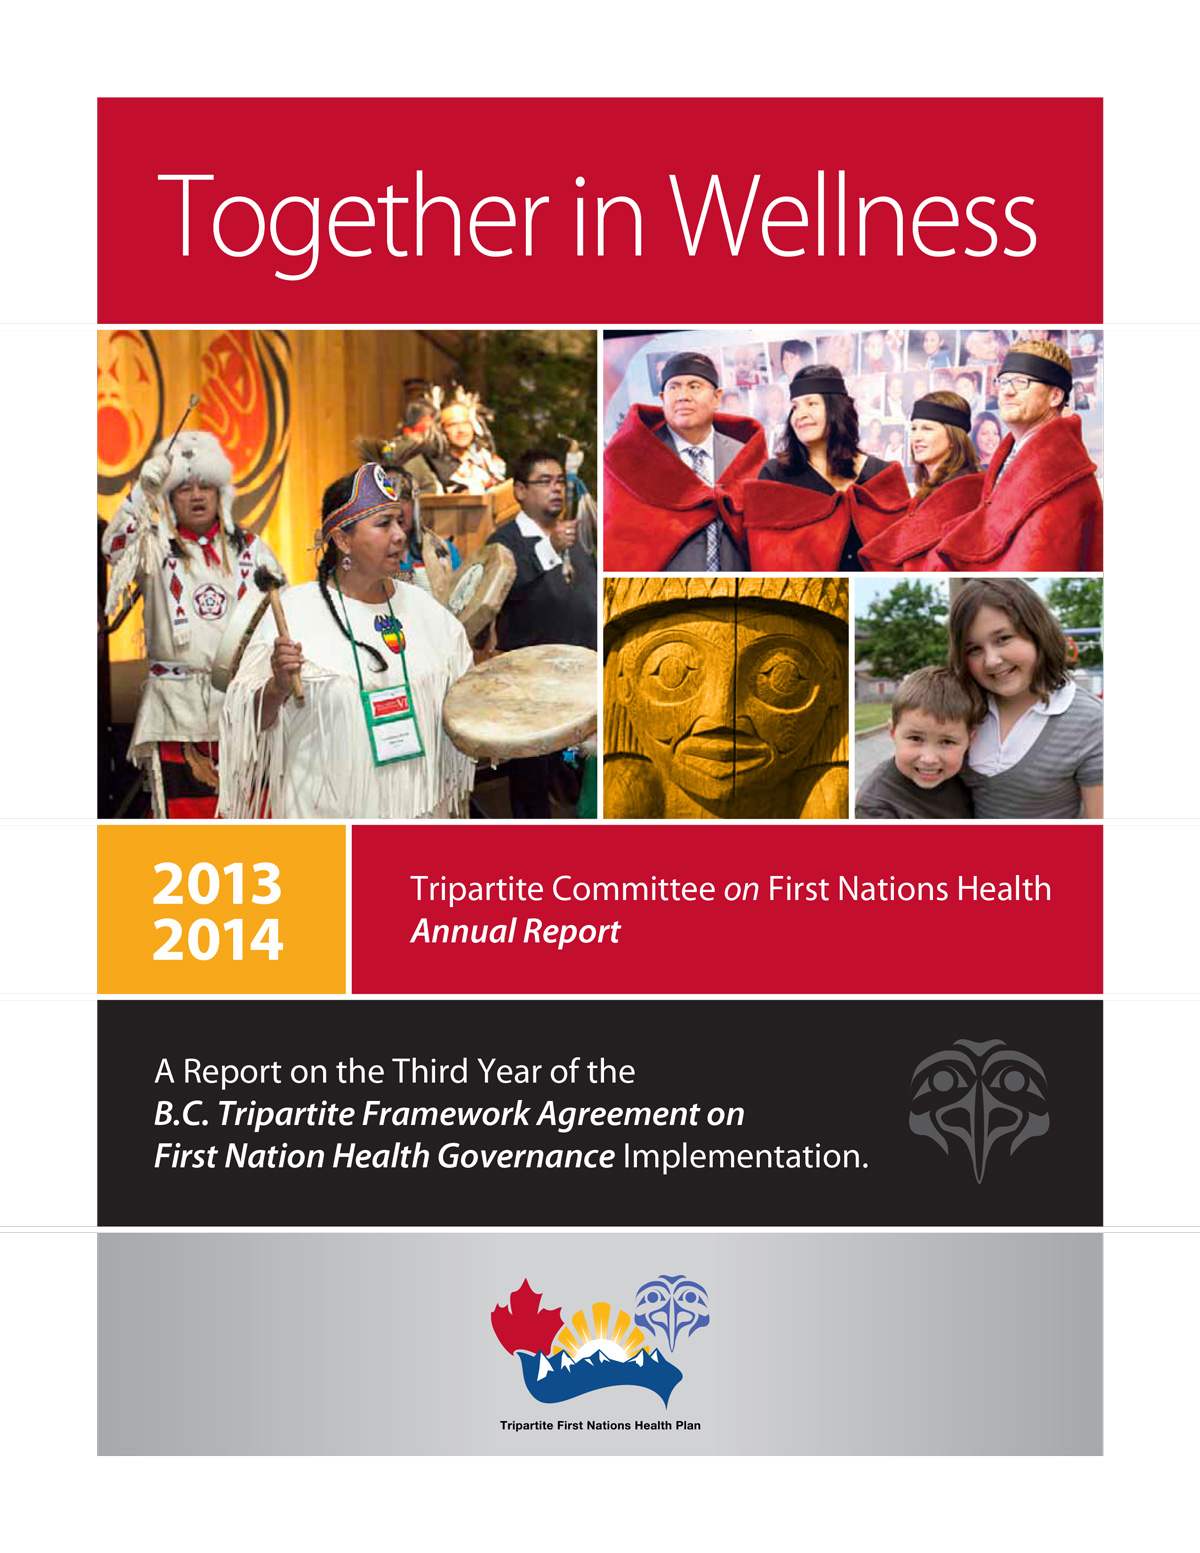 Together-In-Wellness-2013-14-Annual-Report.jpg